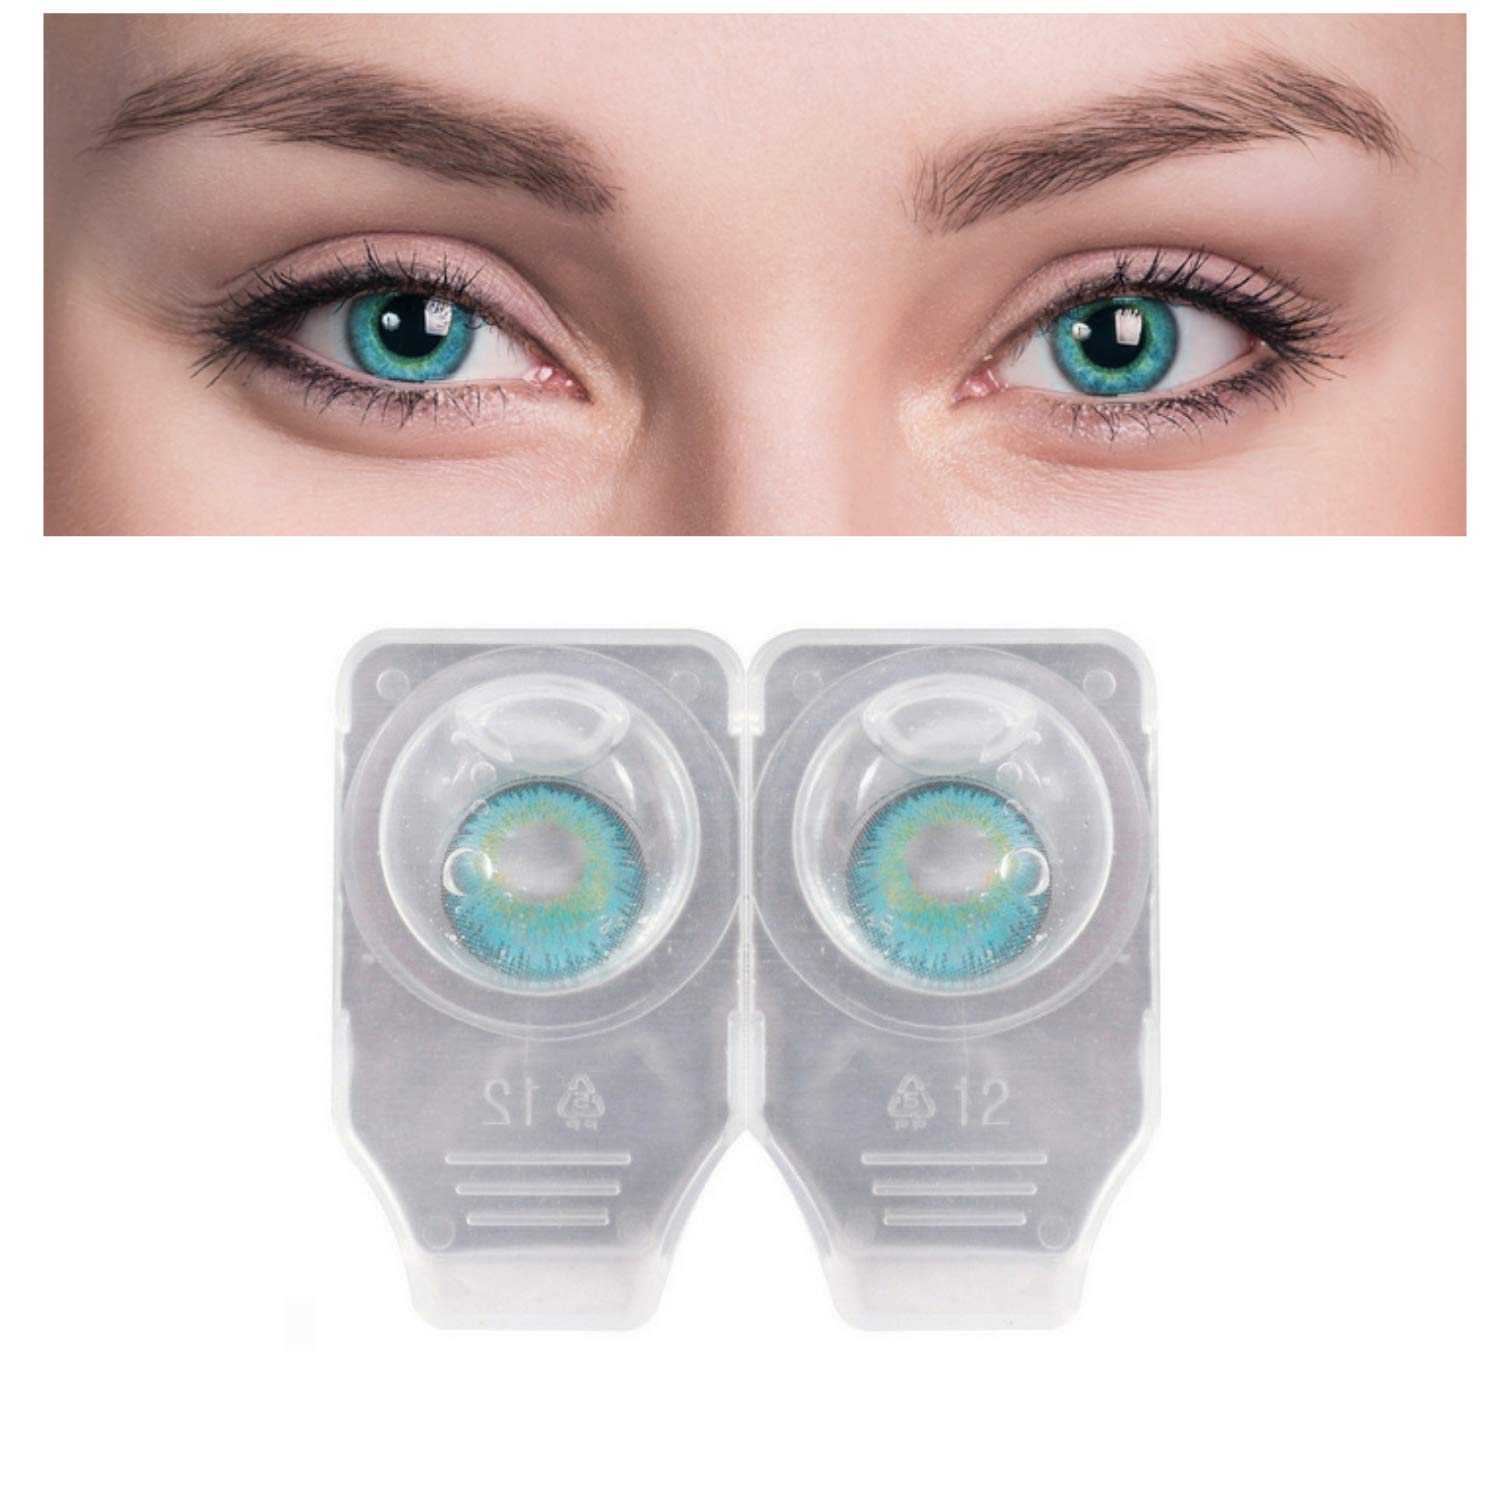 Eyes Contact Lenses Color lense WIith Case + Water / Event 3 Tone Contact Lenses Eye Wear + free water kit / disposible lenses / lense, eye lense / color lense / eye lenses for girls